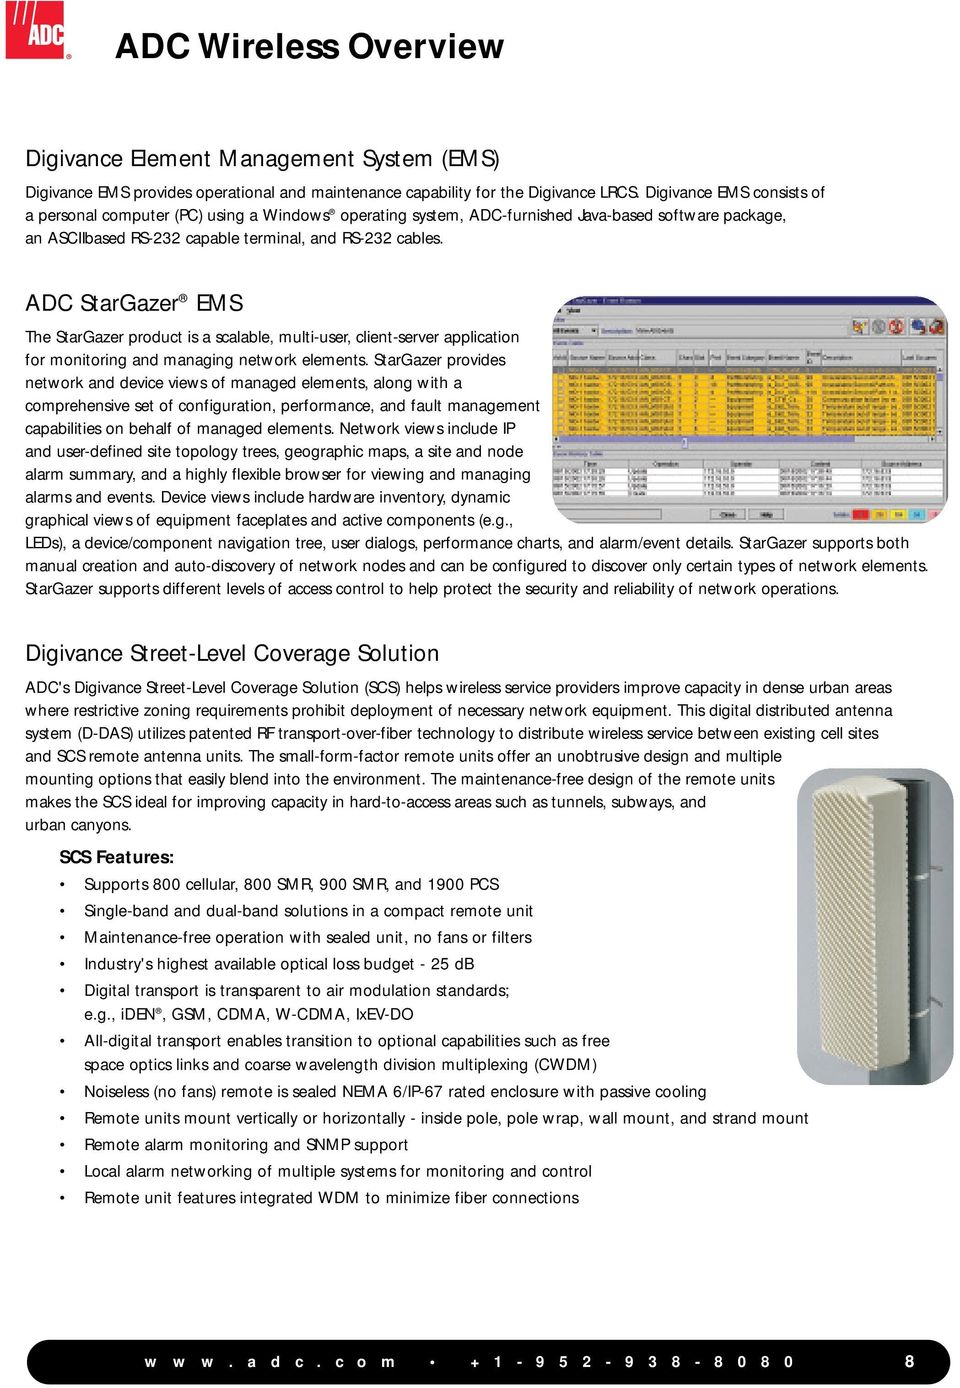 ADC StarGazer EMS The StarGazer product is a scalable, multi-user, client-server application for monitoring and managing network elements.